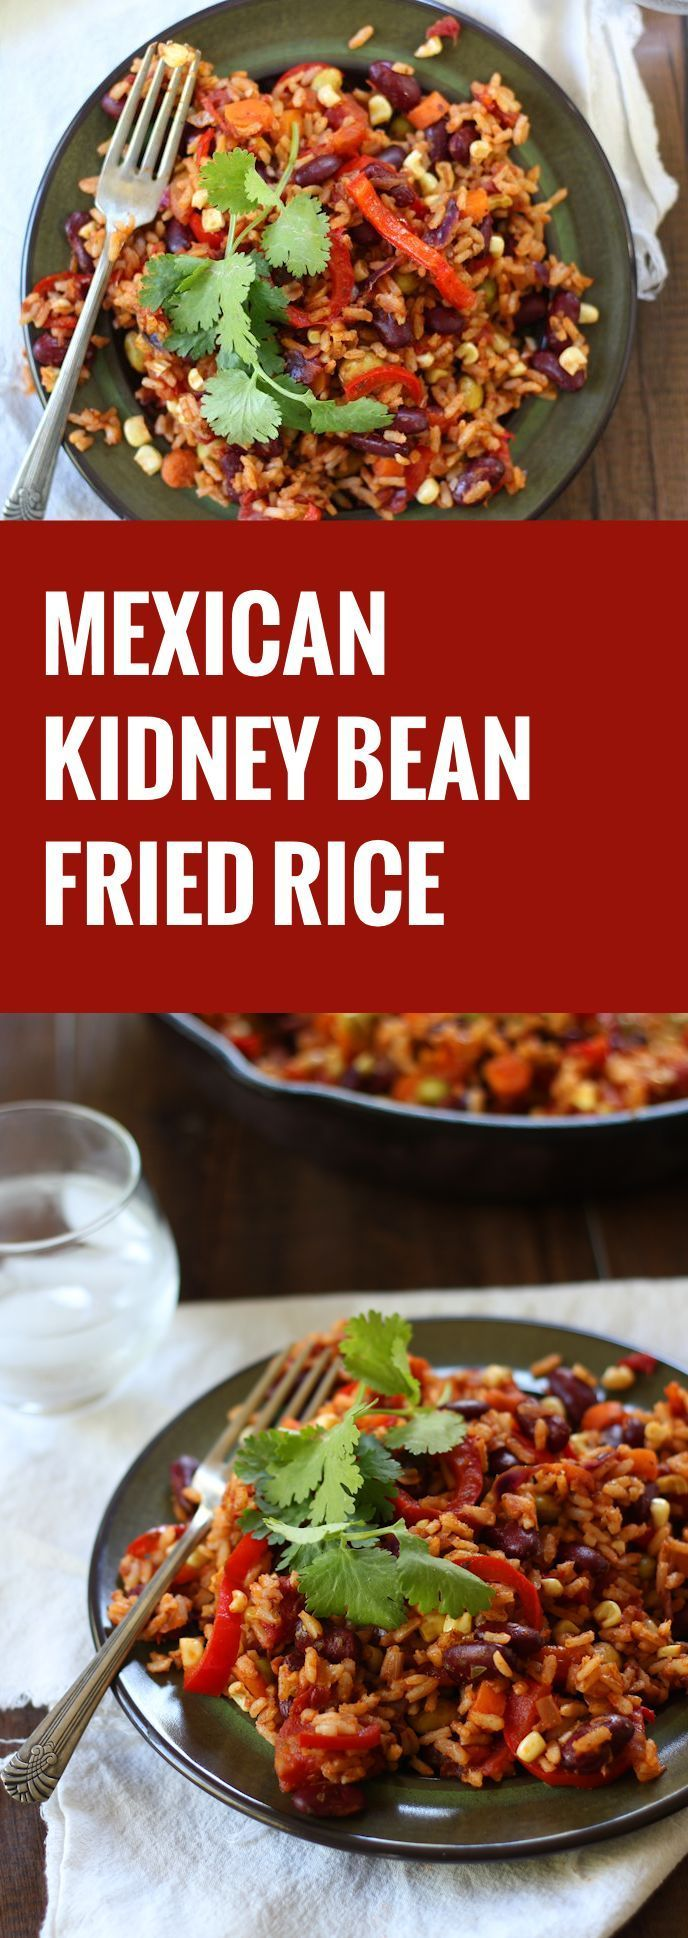 Asian-Mexican fusion food at it's best! This Mexican kidney bean fried rice from The Easy Vegan Cookbook is easy, delicious and packed with veggie goodness.